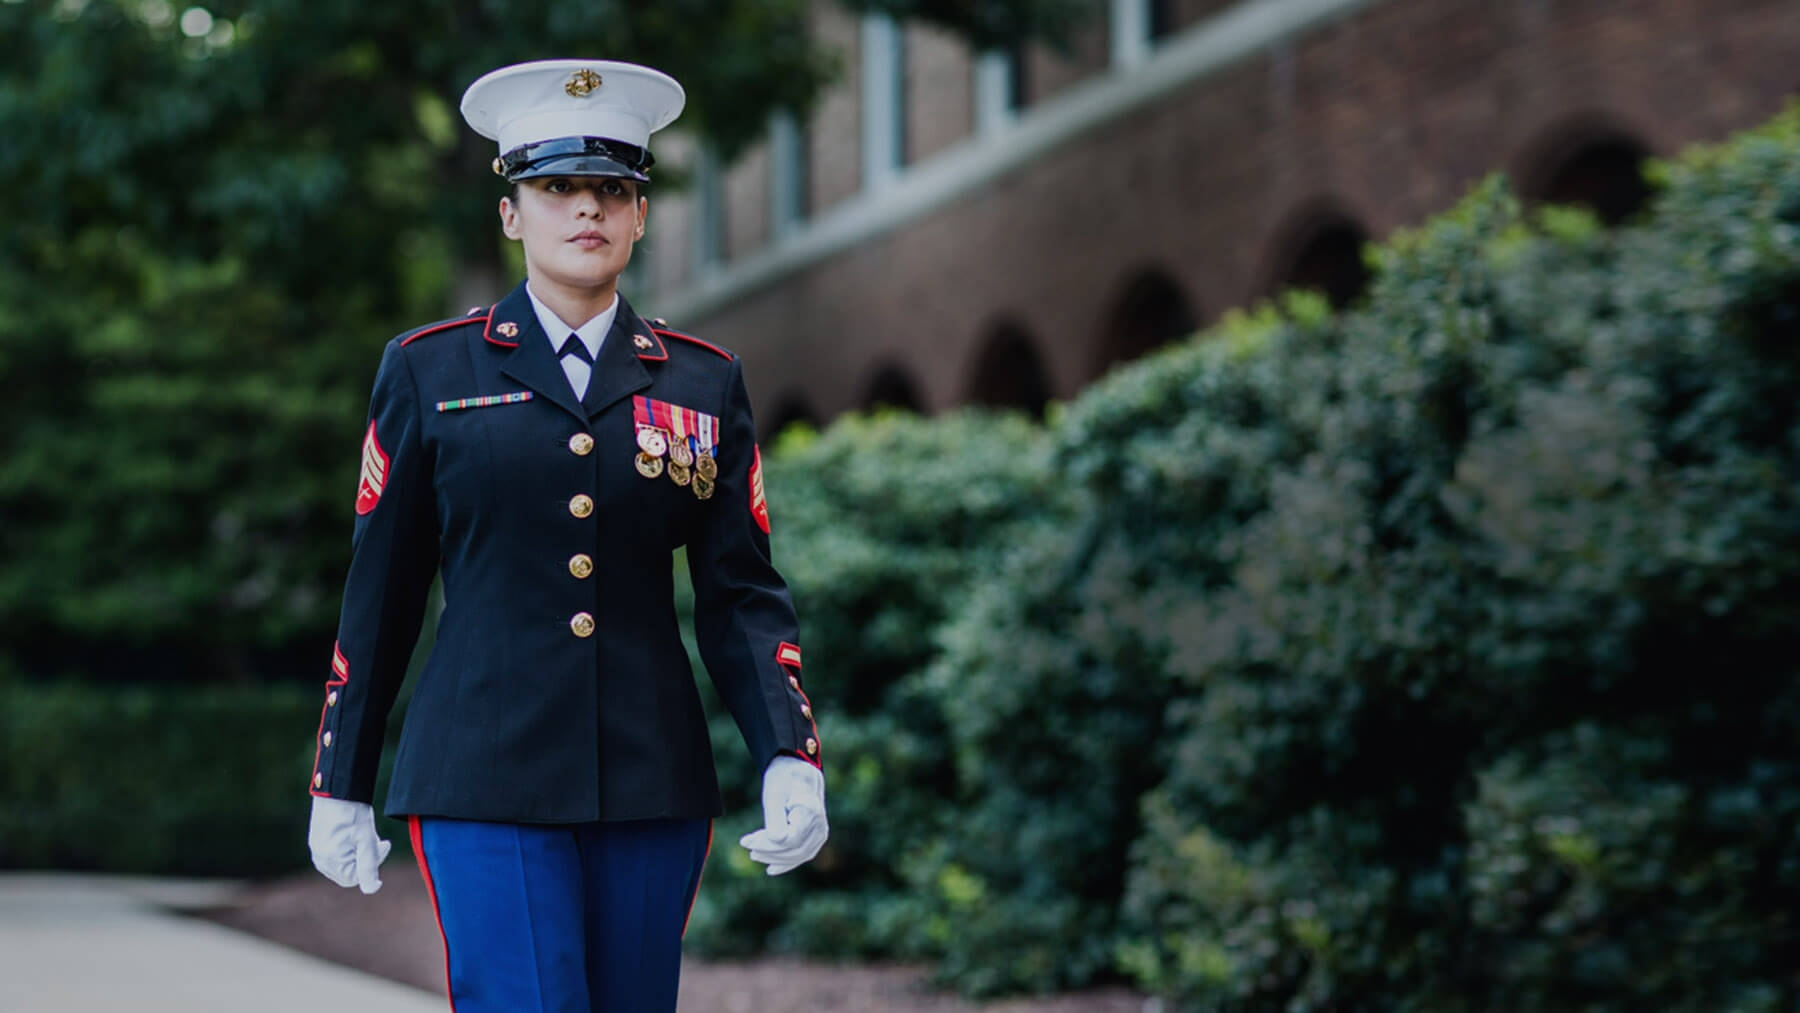 A Marine in Dress Blues and white gloves walks with a serious expression.